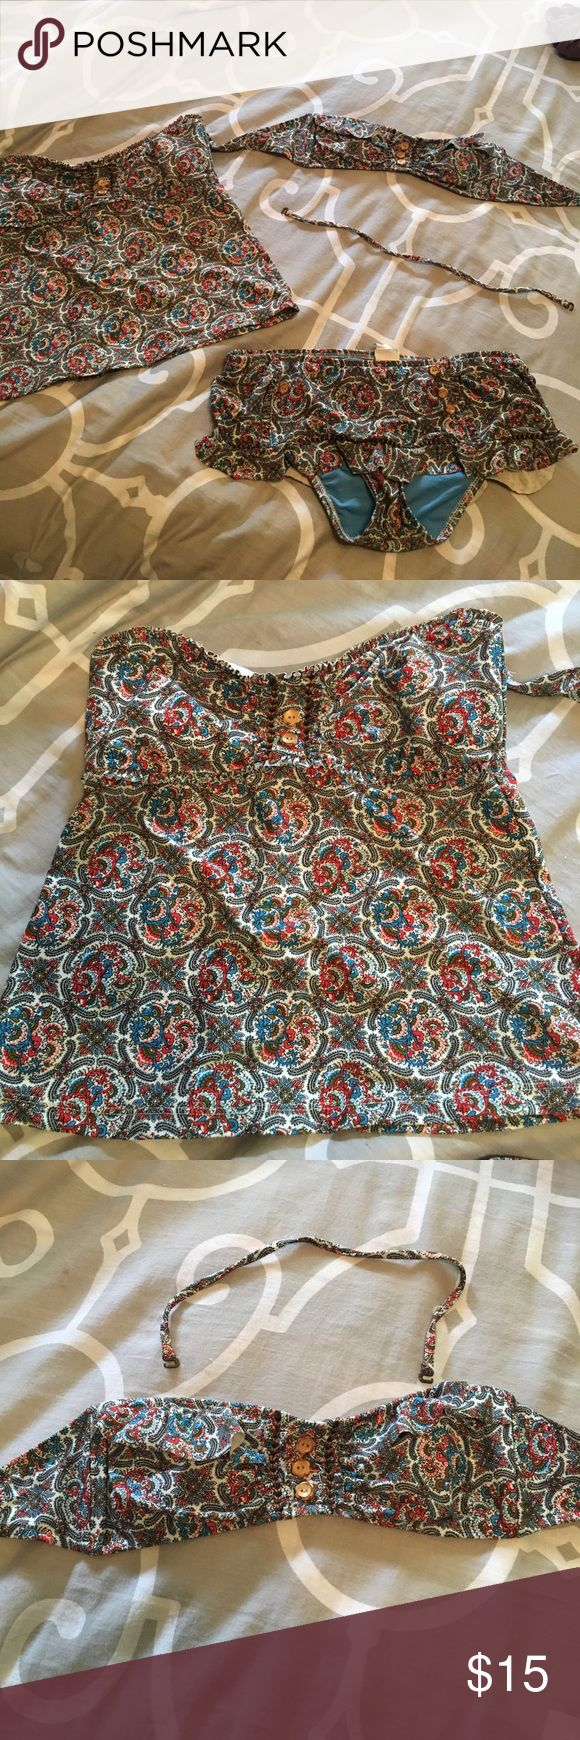 Lucky Brand 3 piece swim wear Paisley printed suit with wood button and bead accents. Skirted bikini bottom size L. Tankini top size M. Bandeau top size S. Both tops can  be worn strapless or with the removable strap included. Bottoms are missing two buttons... but it isn't very obvious when worn. Easy fix too! I am petite with 34C-- and a booty. That's why the sizes are all different! Purchase together or I can make a separate listing for what you want :) Lucky Brand Swim Bikinis